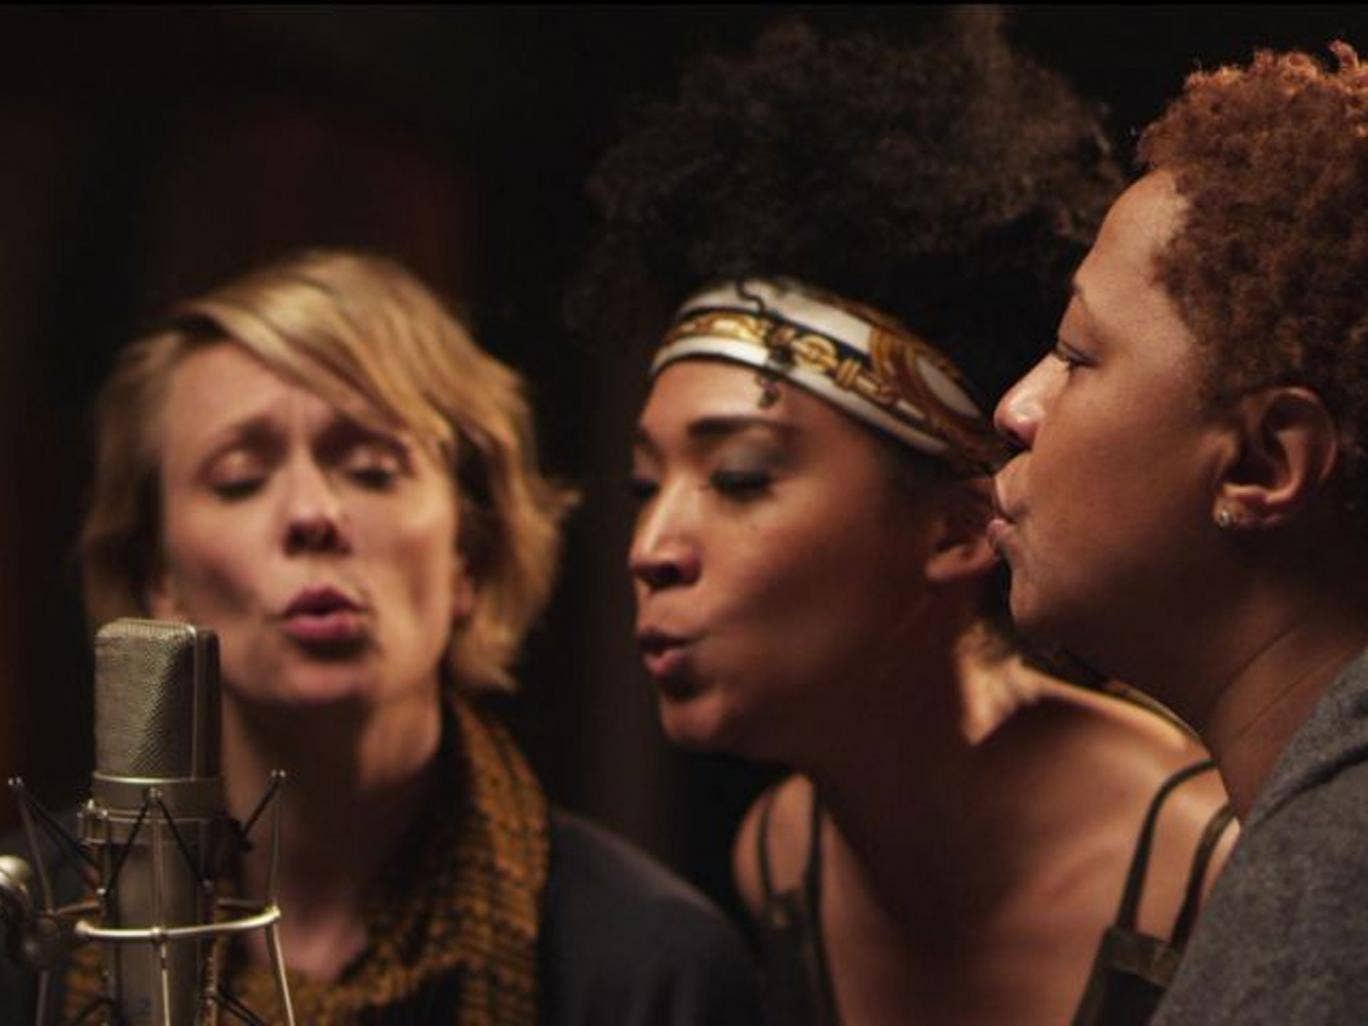 A new film on backing singers reveals the truth about some of the most familiar, but little-known, voices in pop